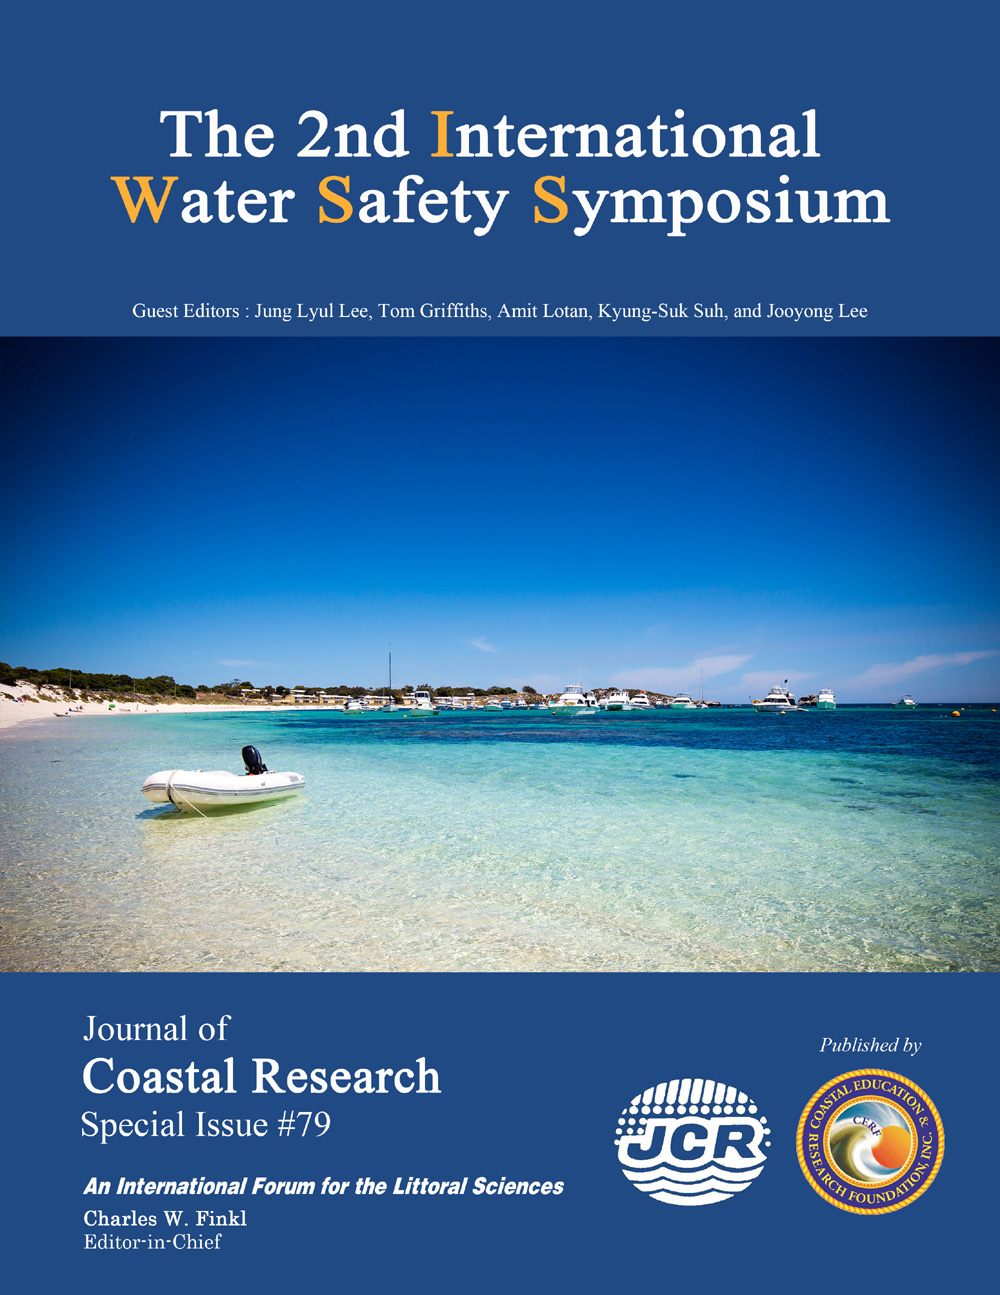 #79 The 2nd International Water Safety Symposium